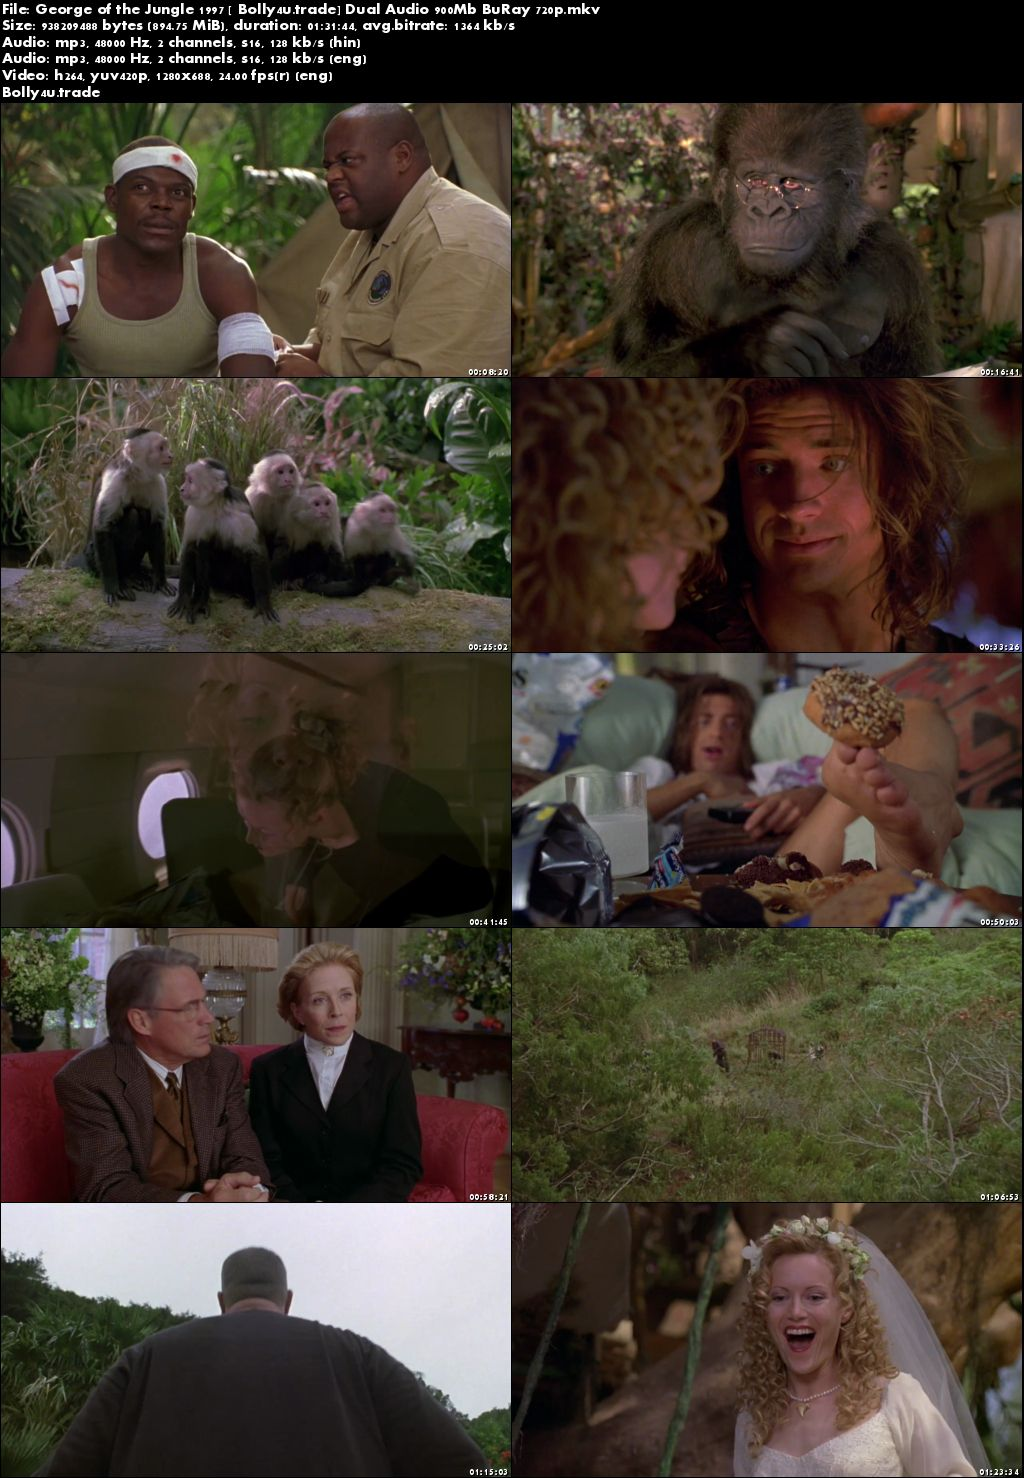 George of the Jungle 1997 BRRip 300Mb Hindi Dual Audio 480p Download